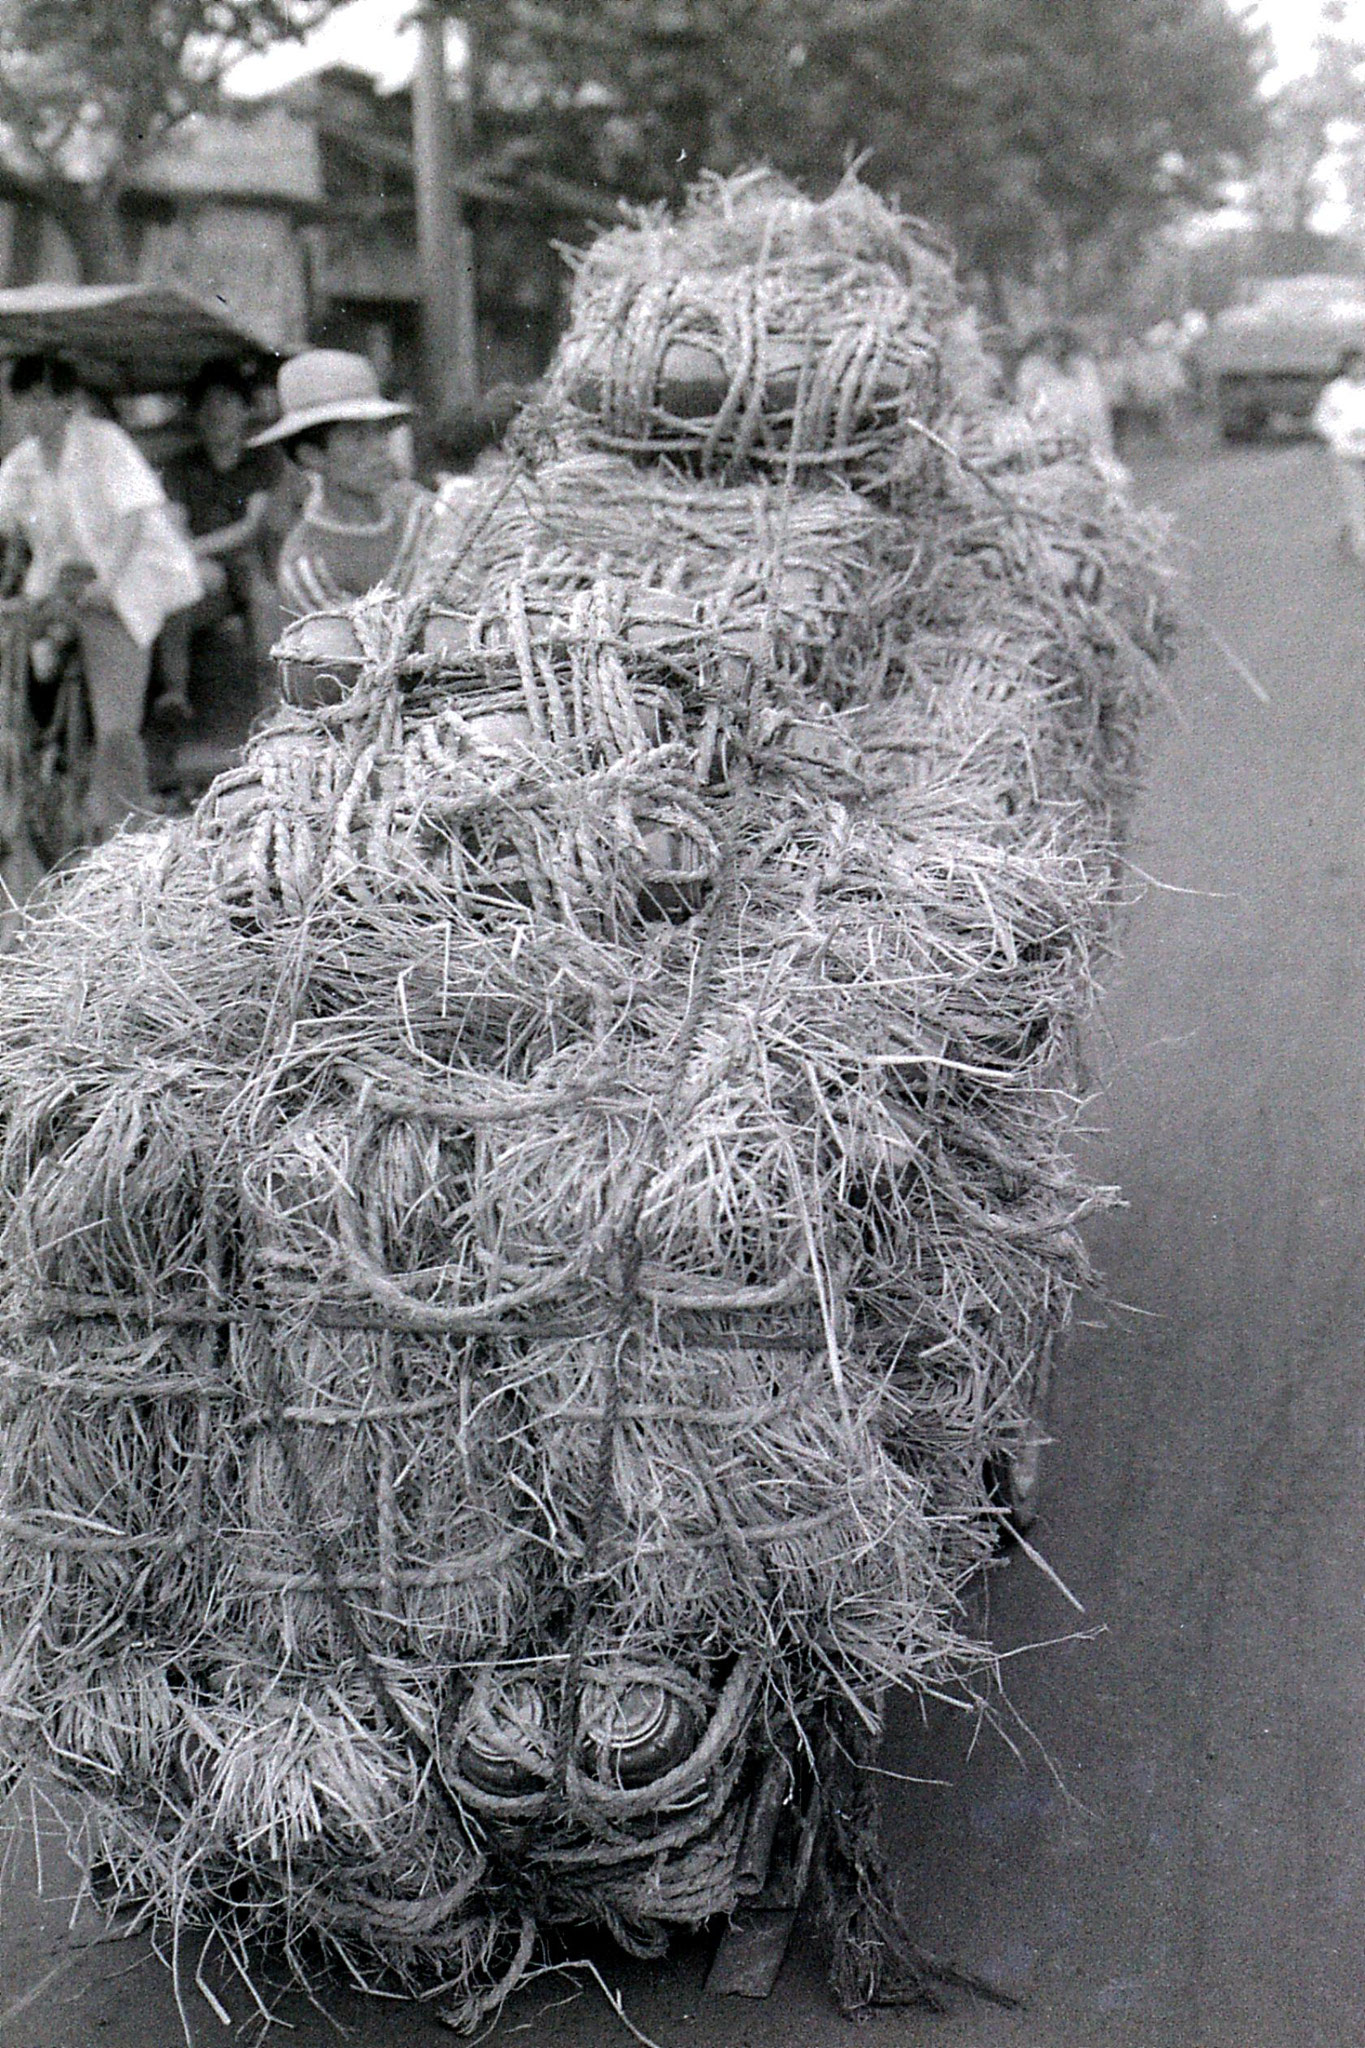 27/6/1989: 19: Shaoxing, pots wrapped in straw on cart